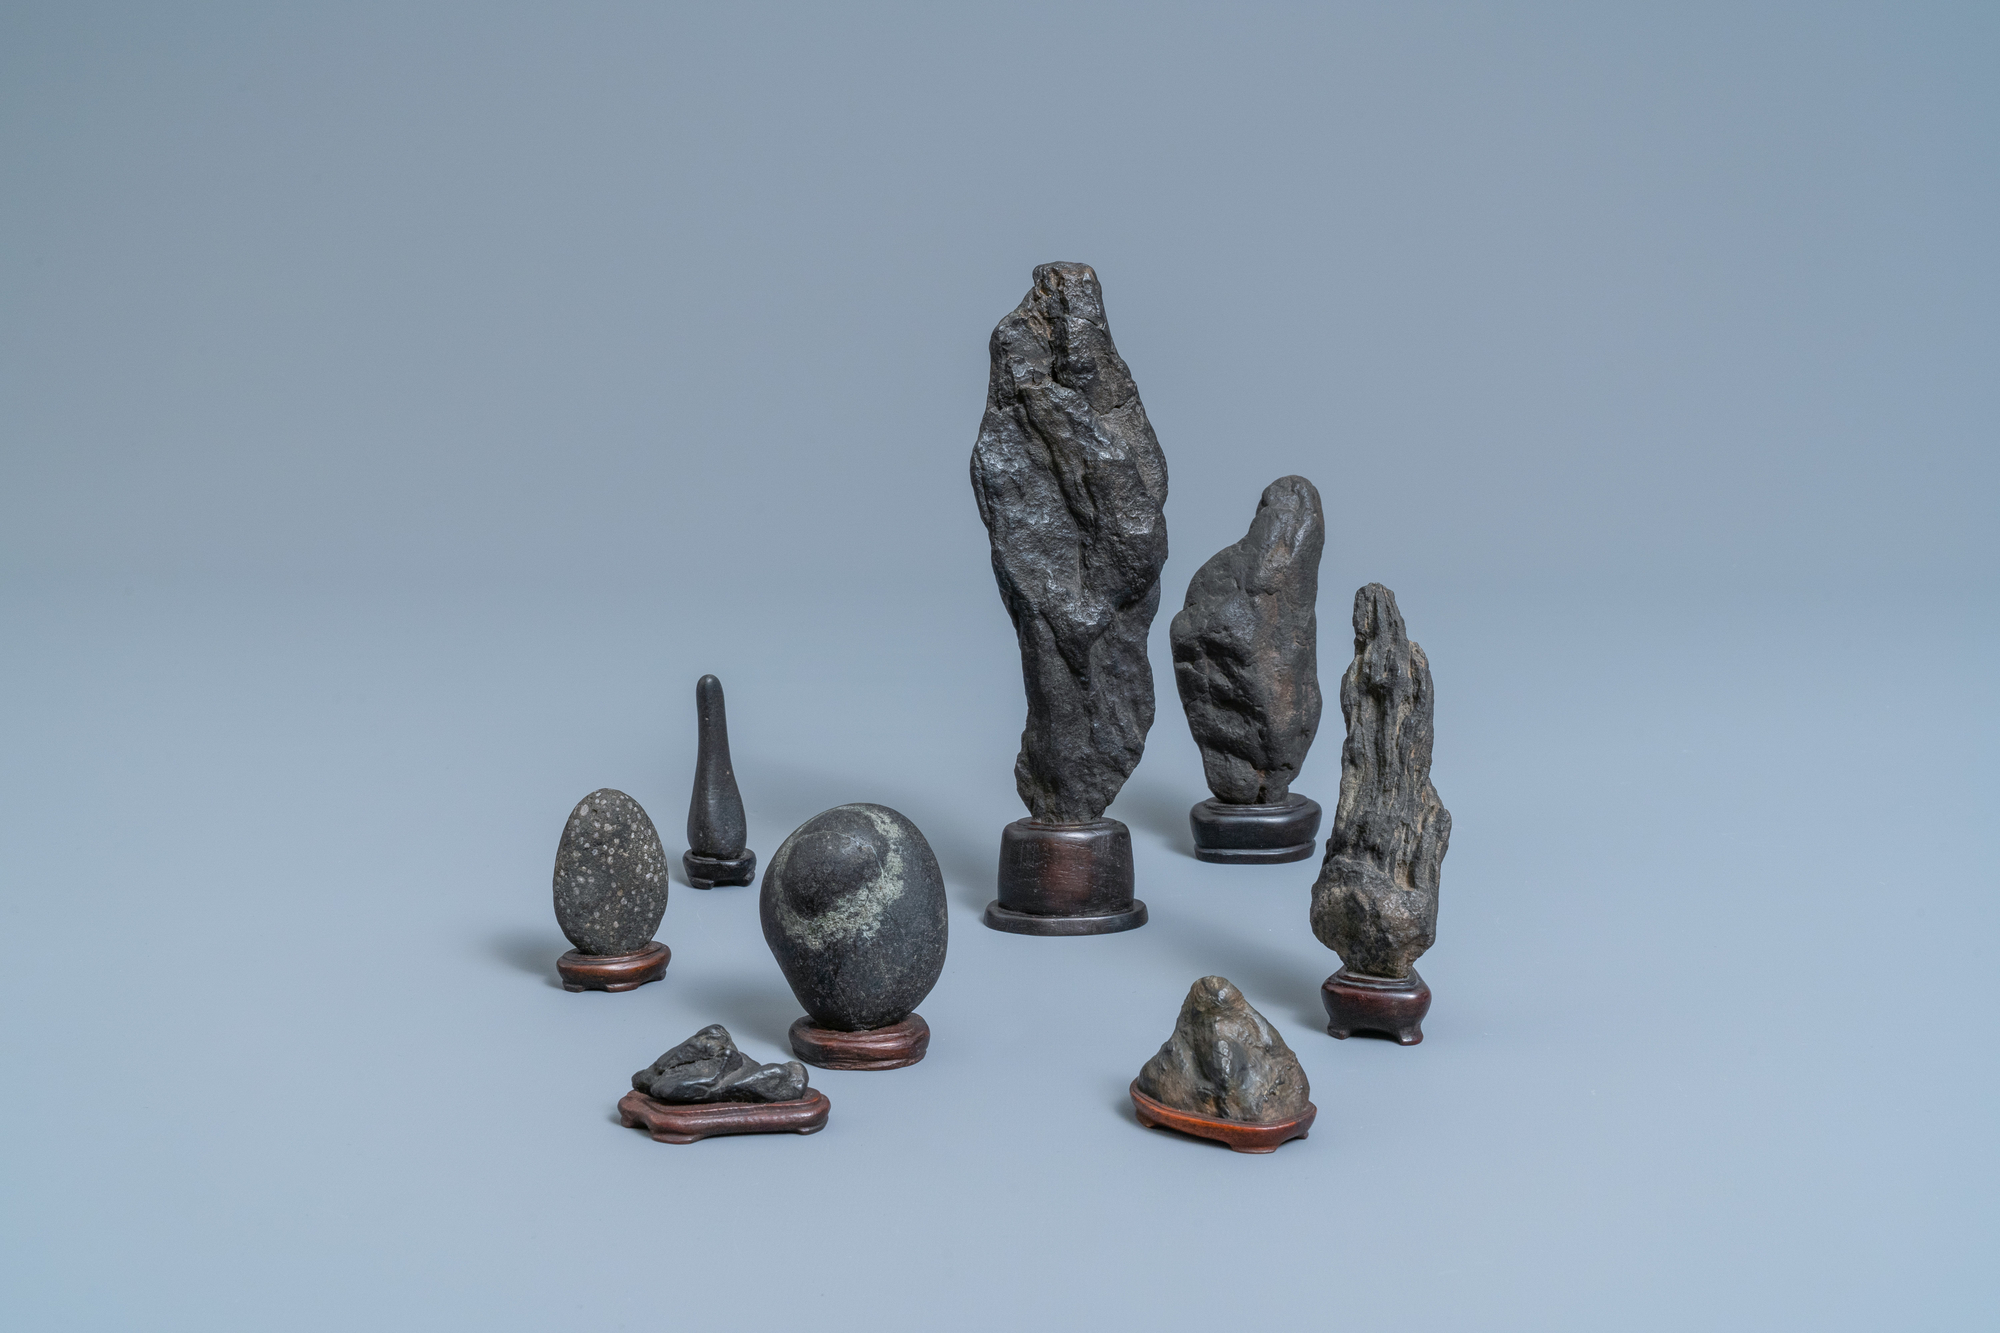 Eight Chinese scholar's rocks on wooden stands, 19/20th C.